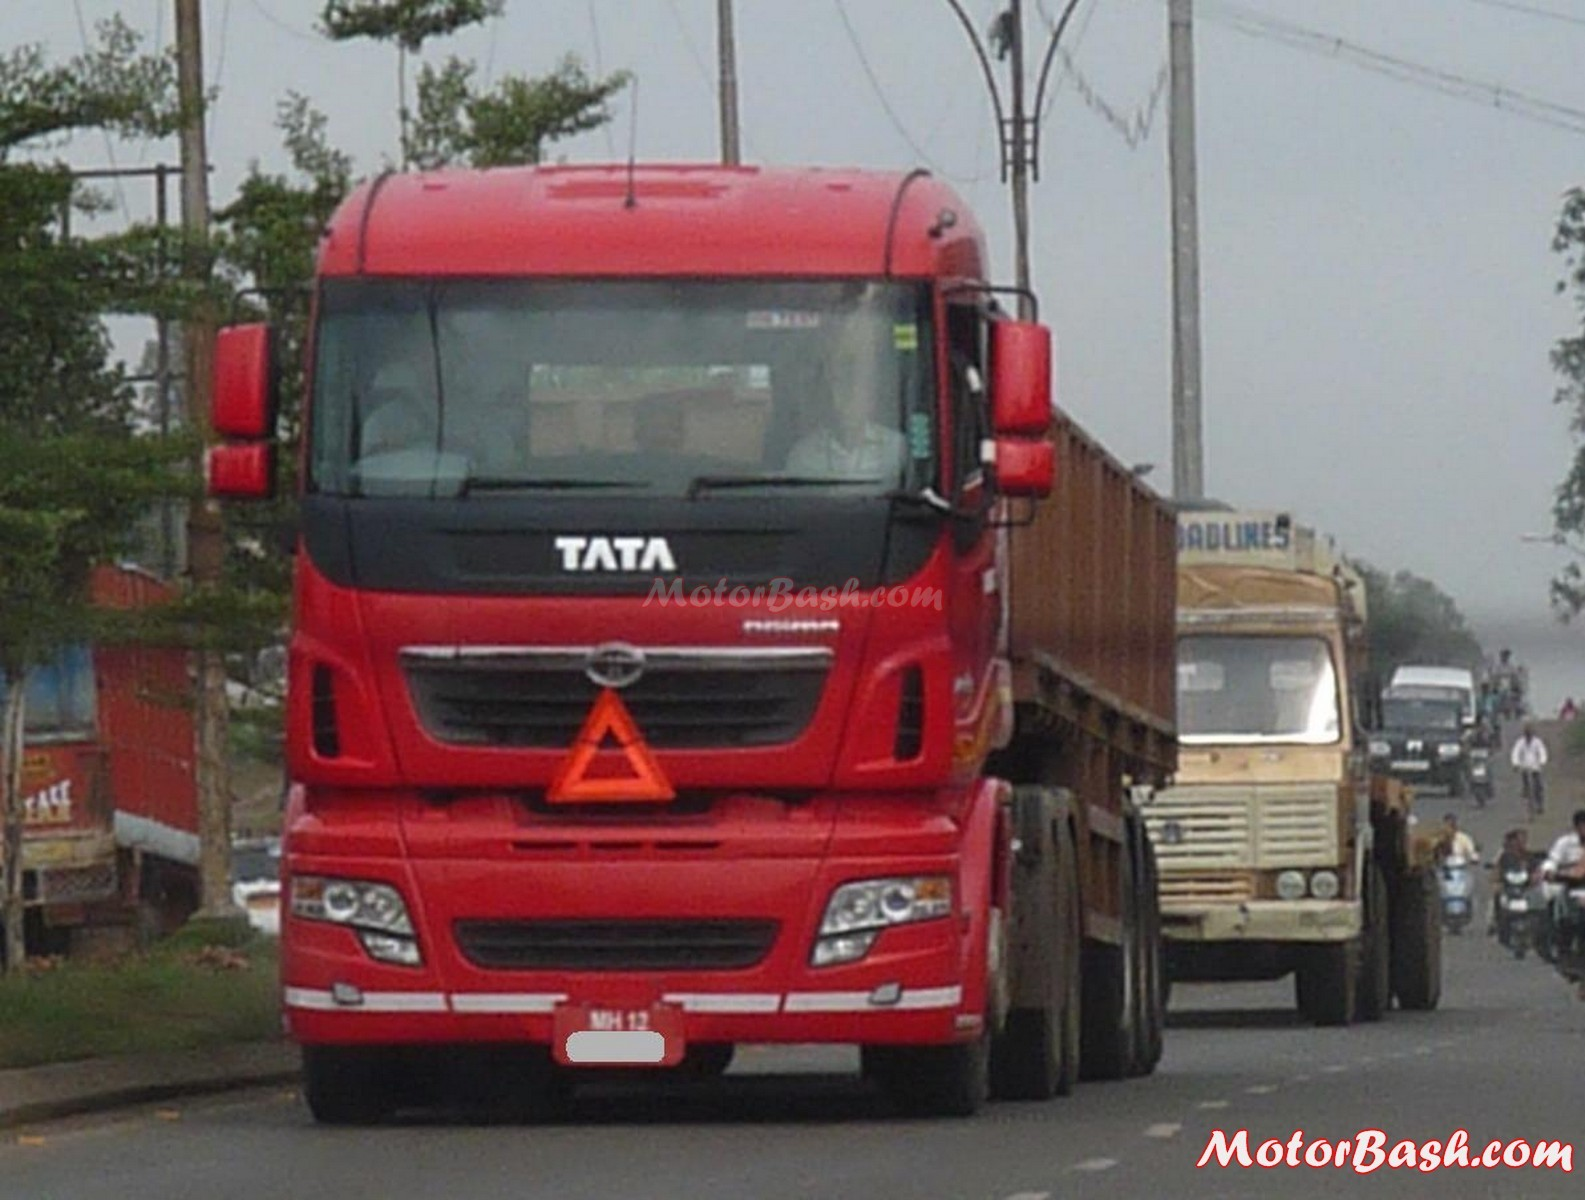 Tata Motors' Acquisition of Daewoo Commercial Vehicles